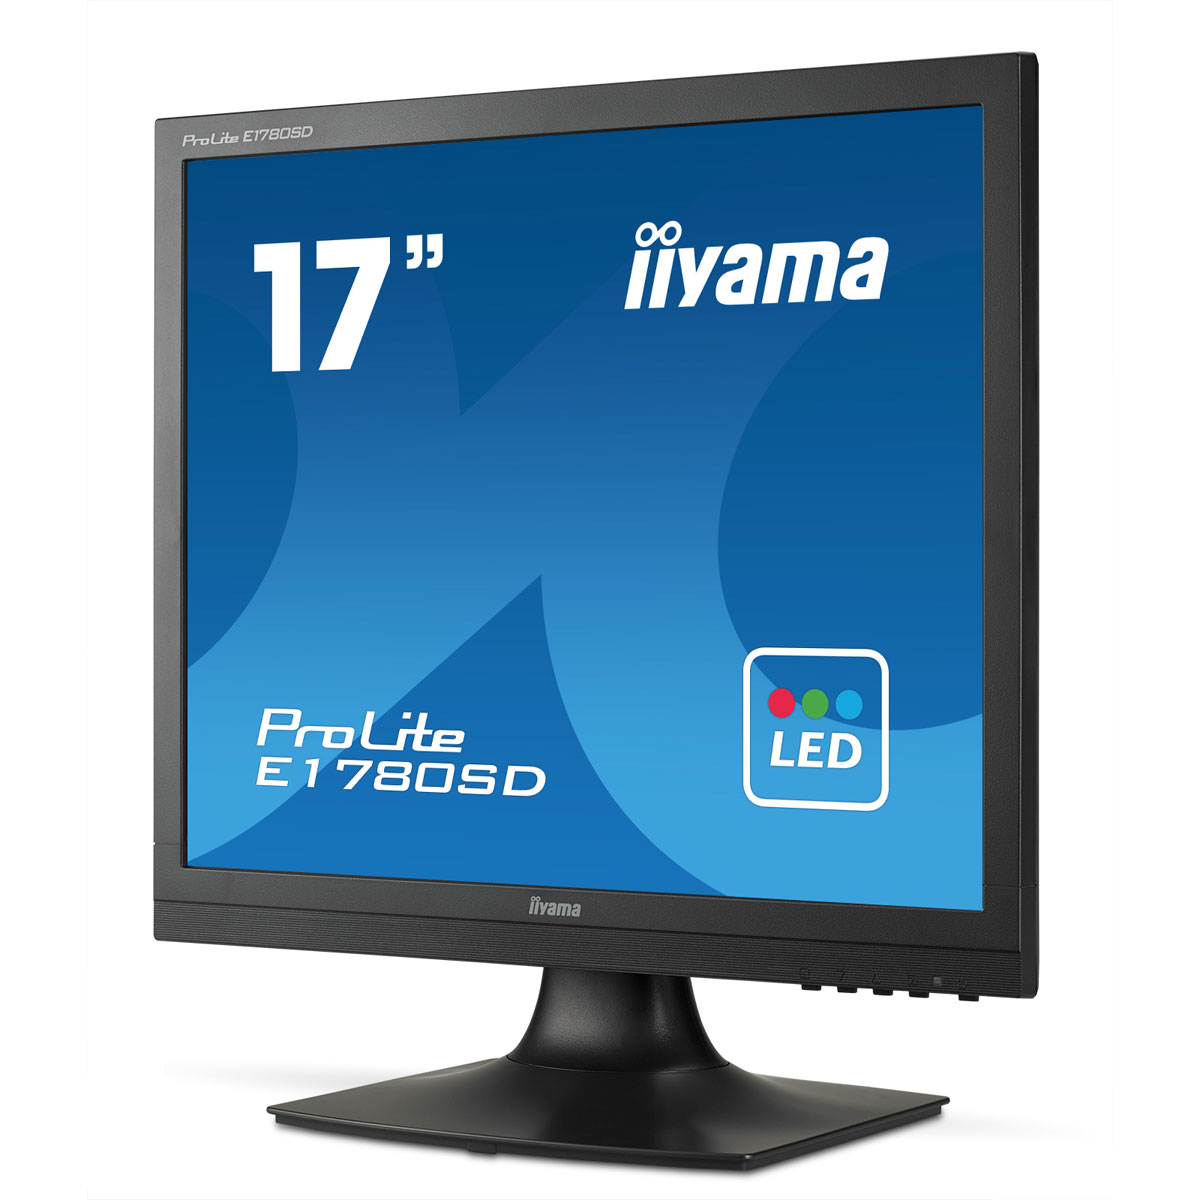 iiyama 17 led prolite e1780sd b1 ecran pc iiyama sur. Black Bedroom Furniture Sets. Home Design Ideas